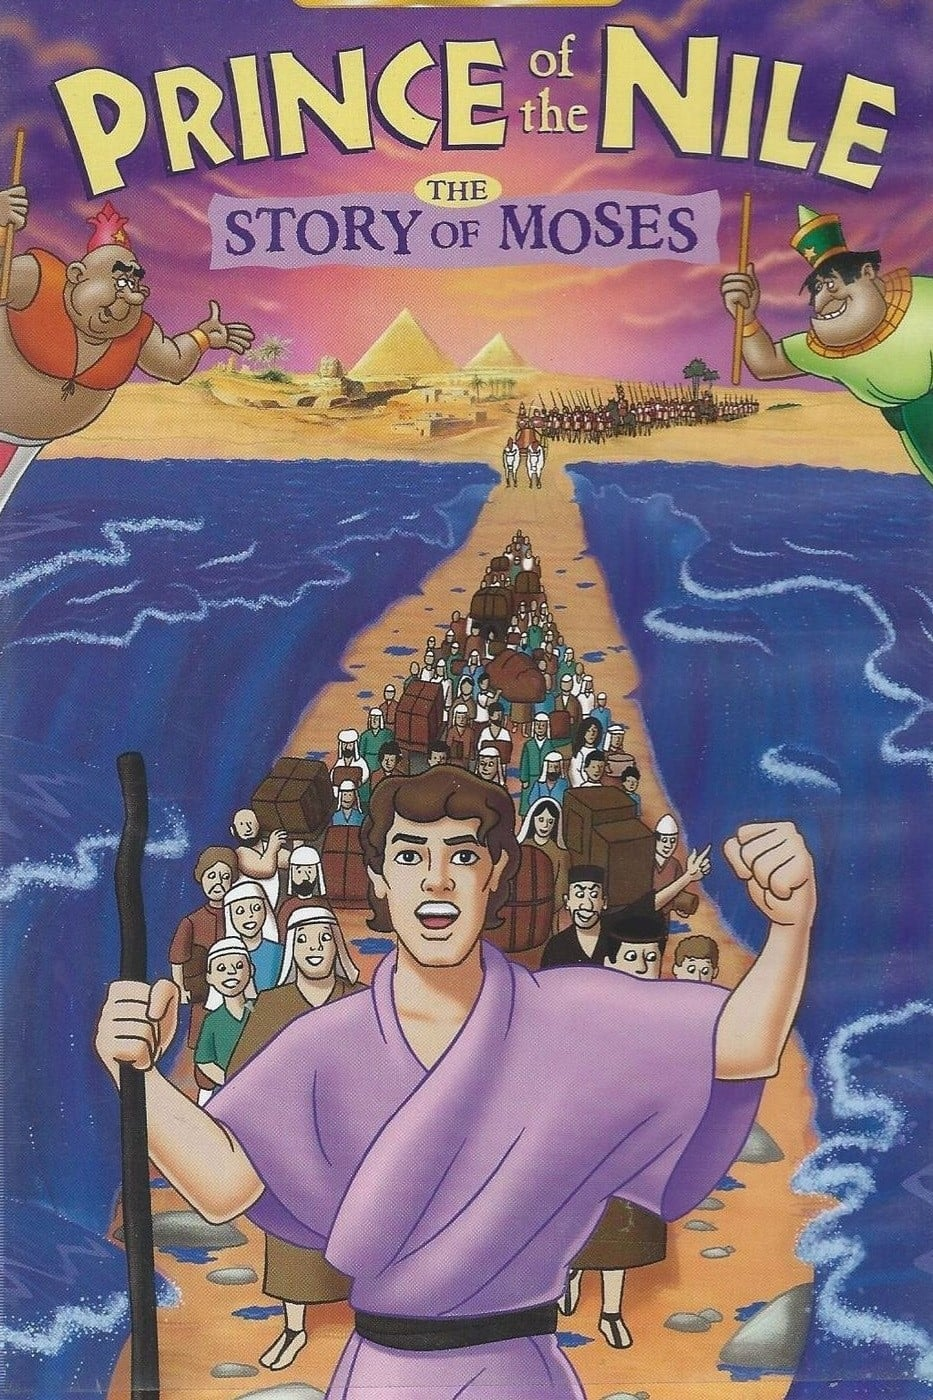 Prince of the Nile: The Story of Moses (2001)